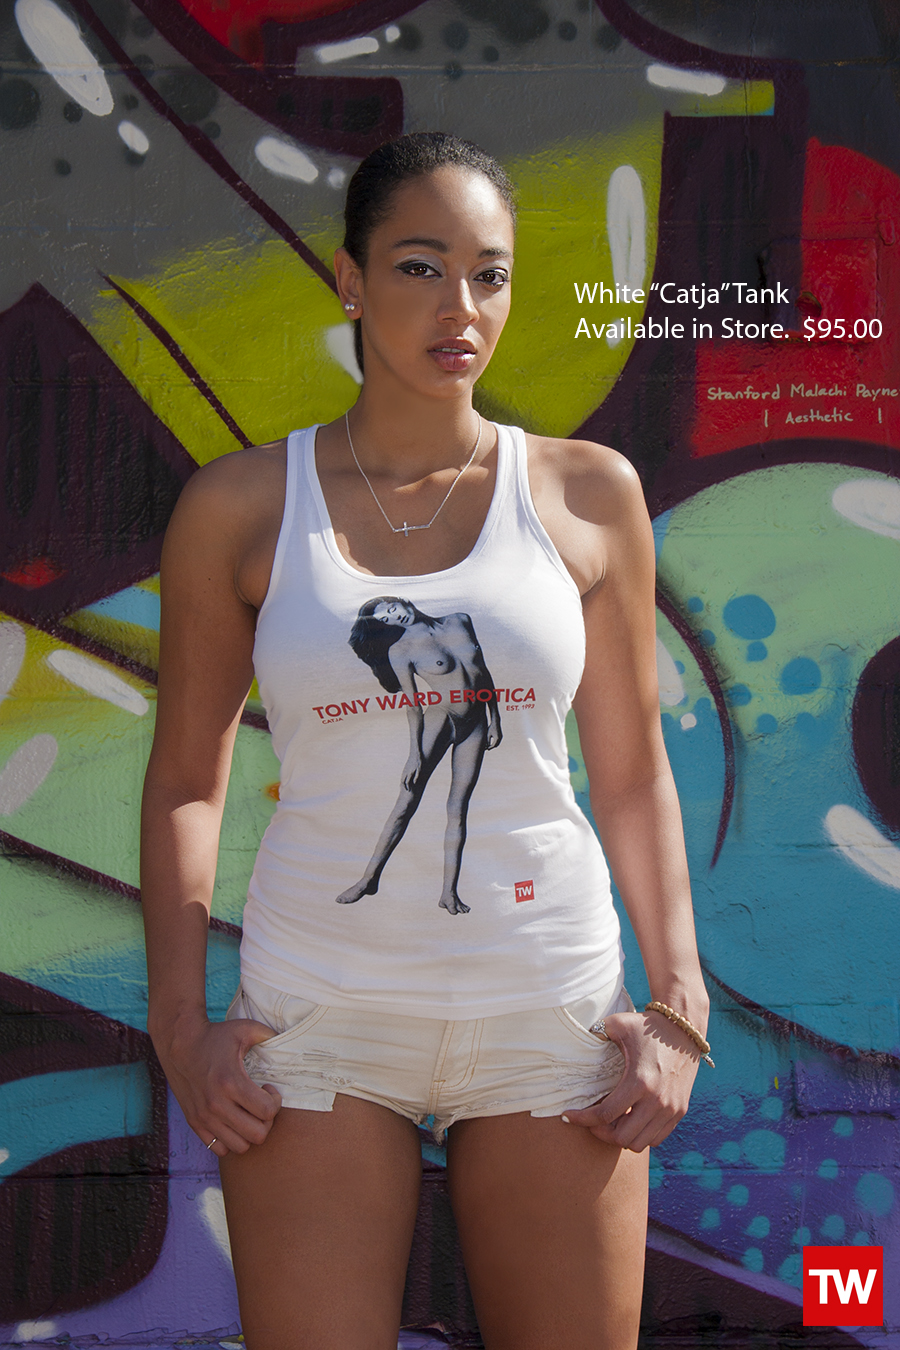 Tony_Ward_Studio_e_commerce_store_t-shirts_white_Catja_tank_sale_model_Chelsea